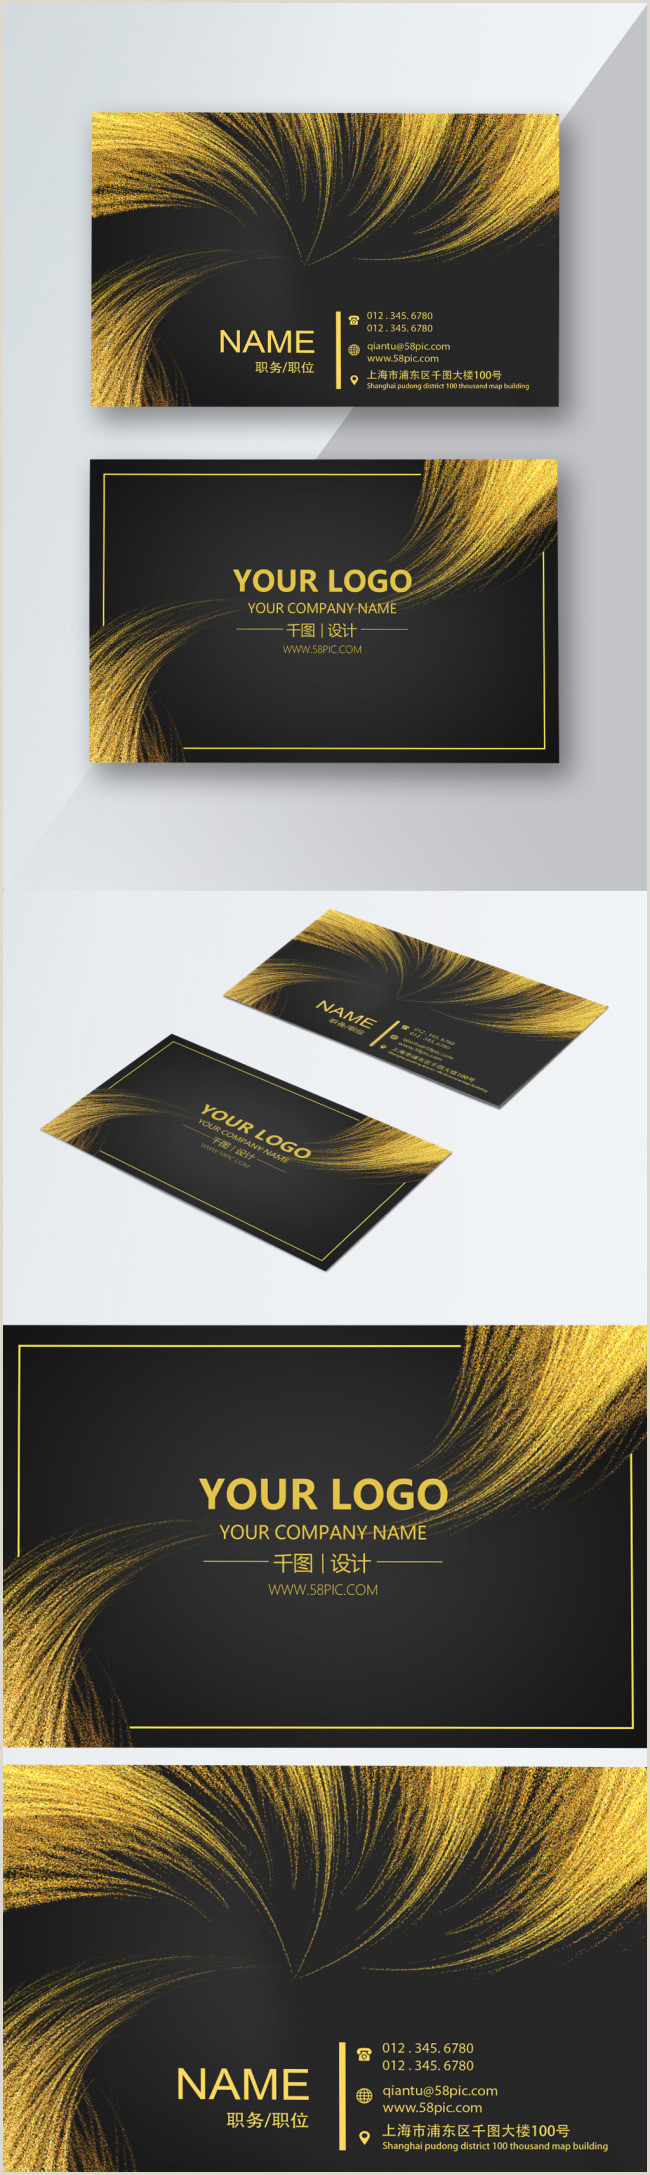 Personal Business Cards With Photo Personal Business Card Template Template Image Picture Free